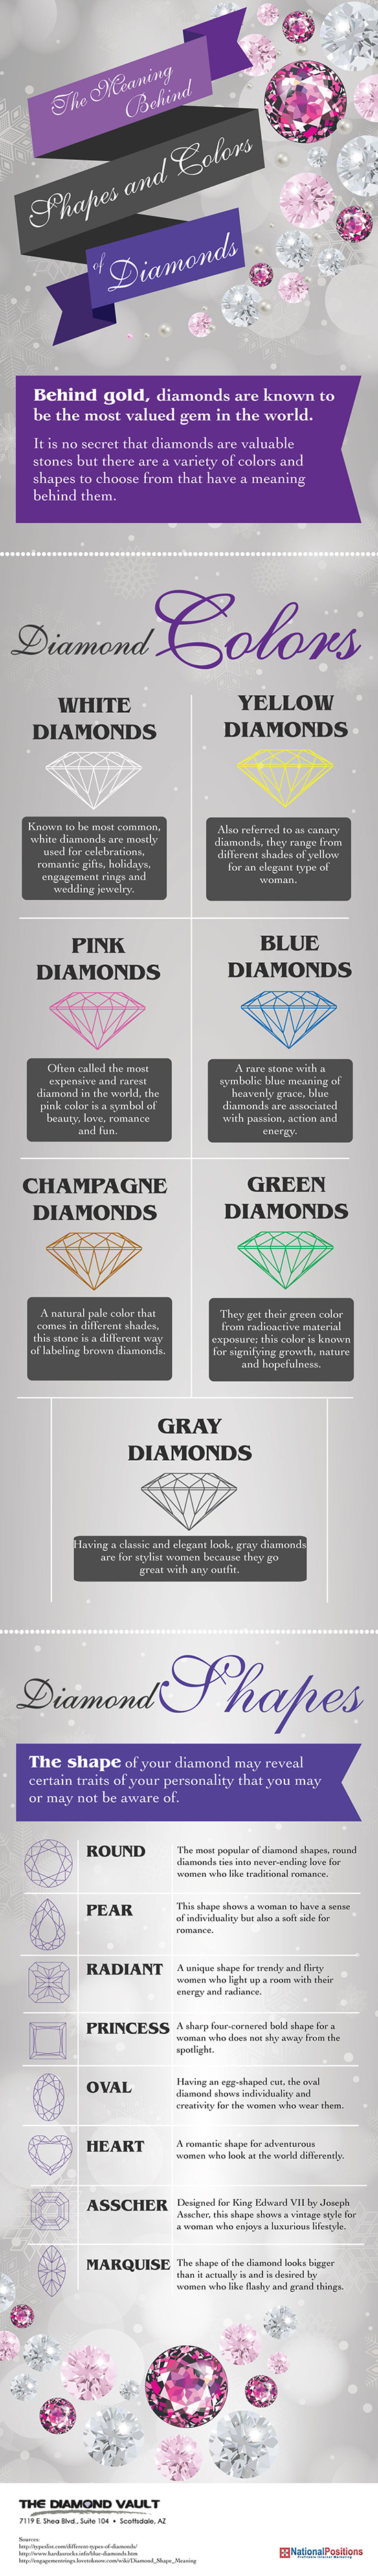 The Meaning Behind Shapes and Colors of Diamonds